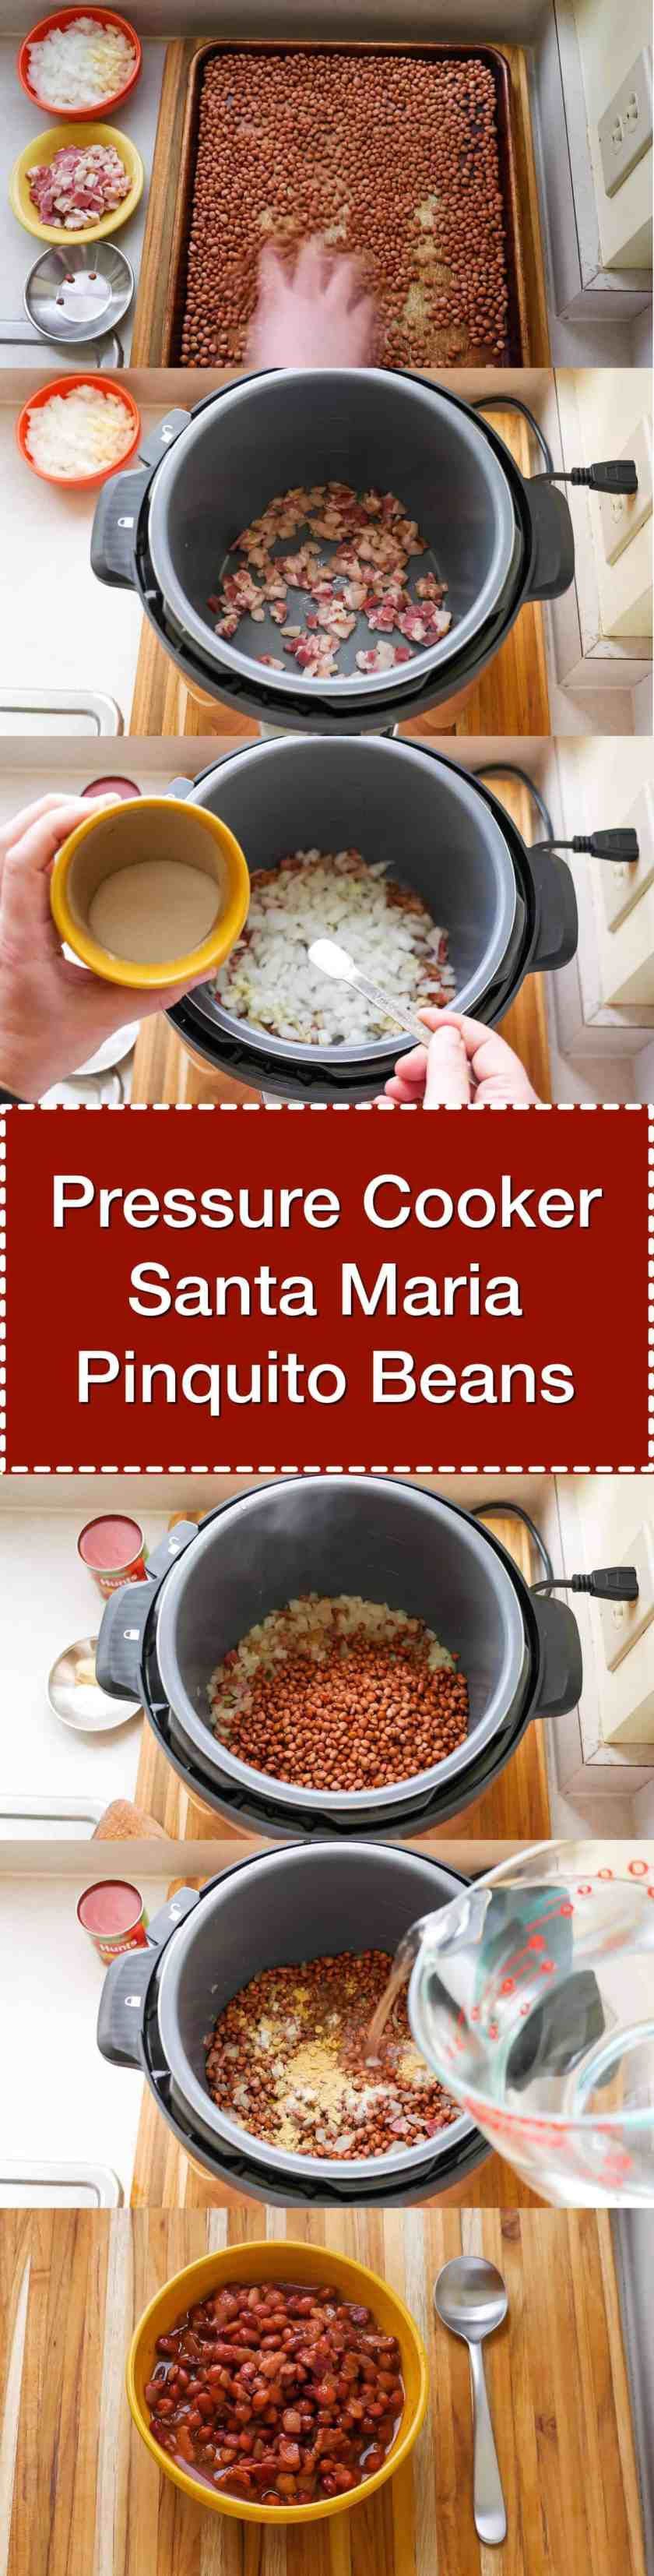 Pressure Cooker Santa Maria Pinquito Beans - Santa Maria style Pinquito Beans, in a little over an hour in the pressure cooker.